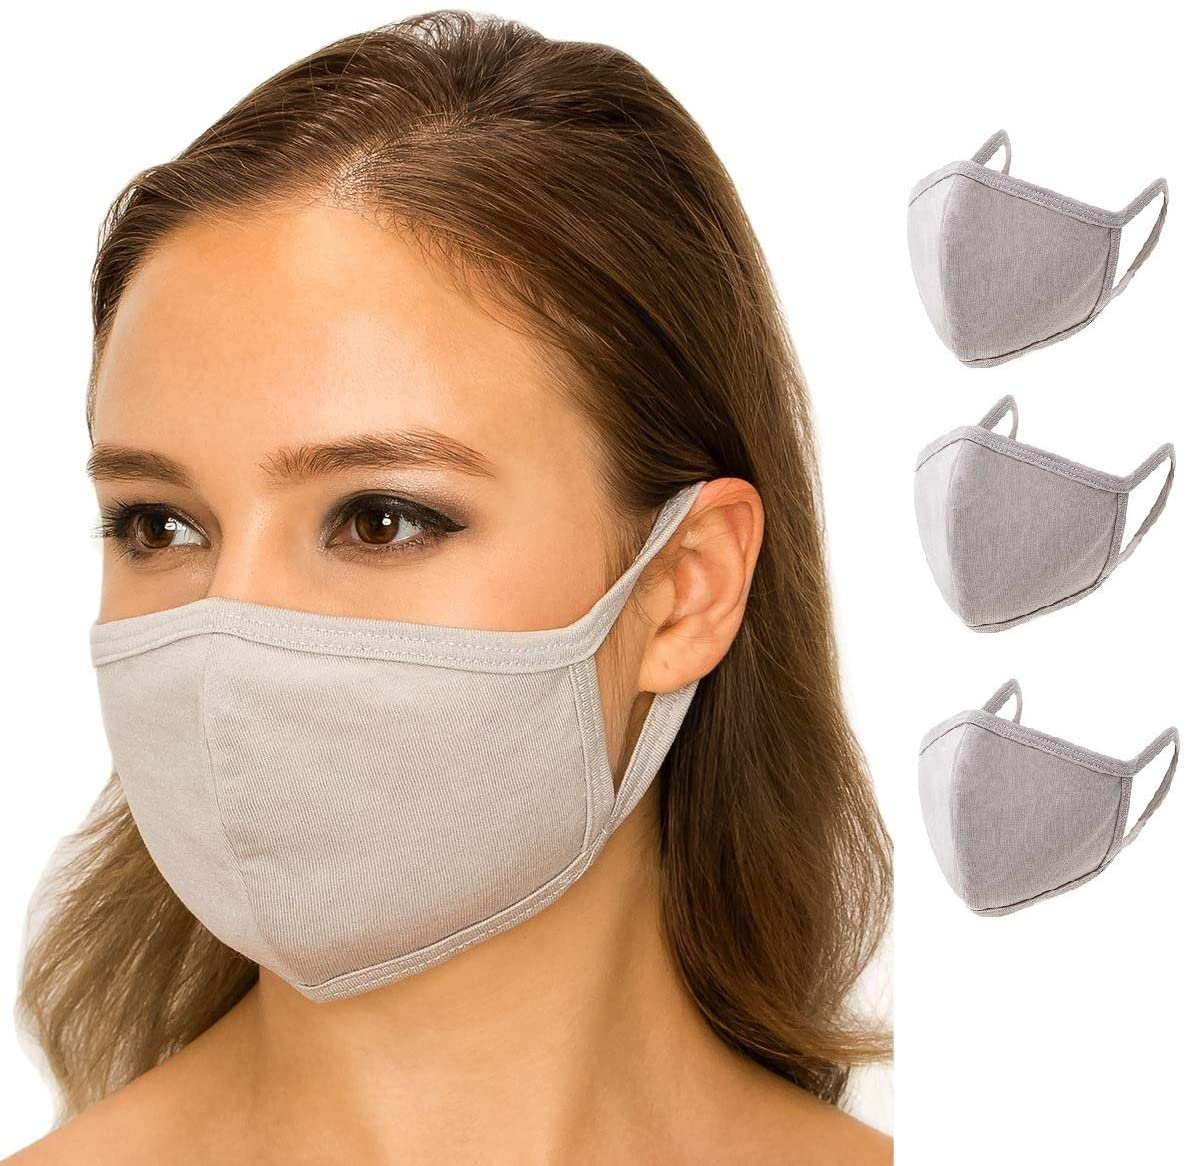 3 Pack Summer Style Easy Breathable Fabric Face Cover Protect Eco-Friendly 100% Natural Cloth Reusable Washable Bandana Balaclavas Fashion 3D Mouth Anti Dust Women Adult Unisex USA Made